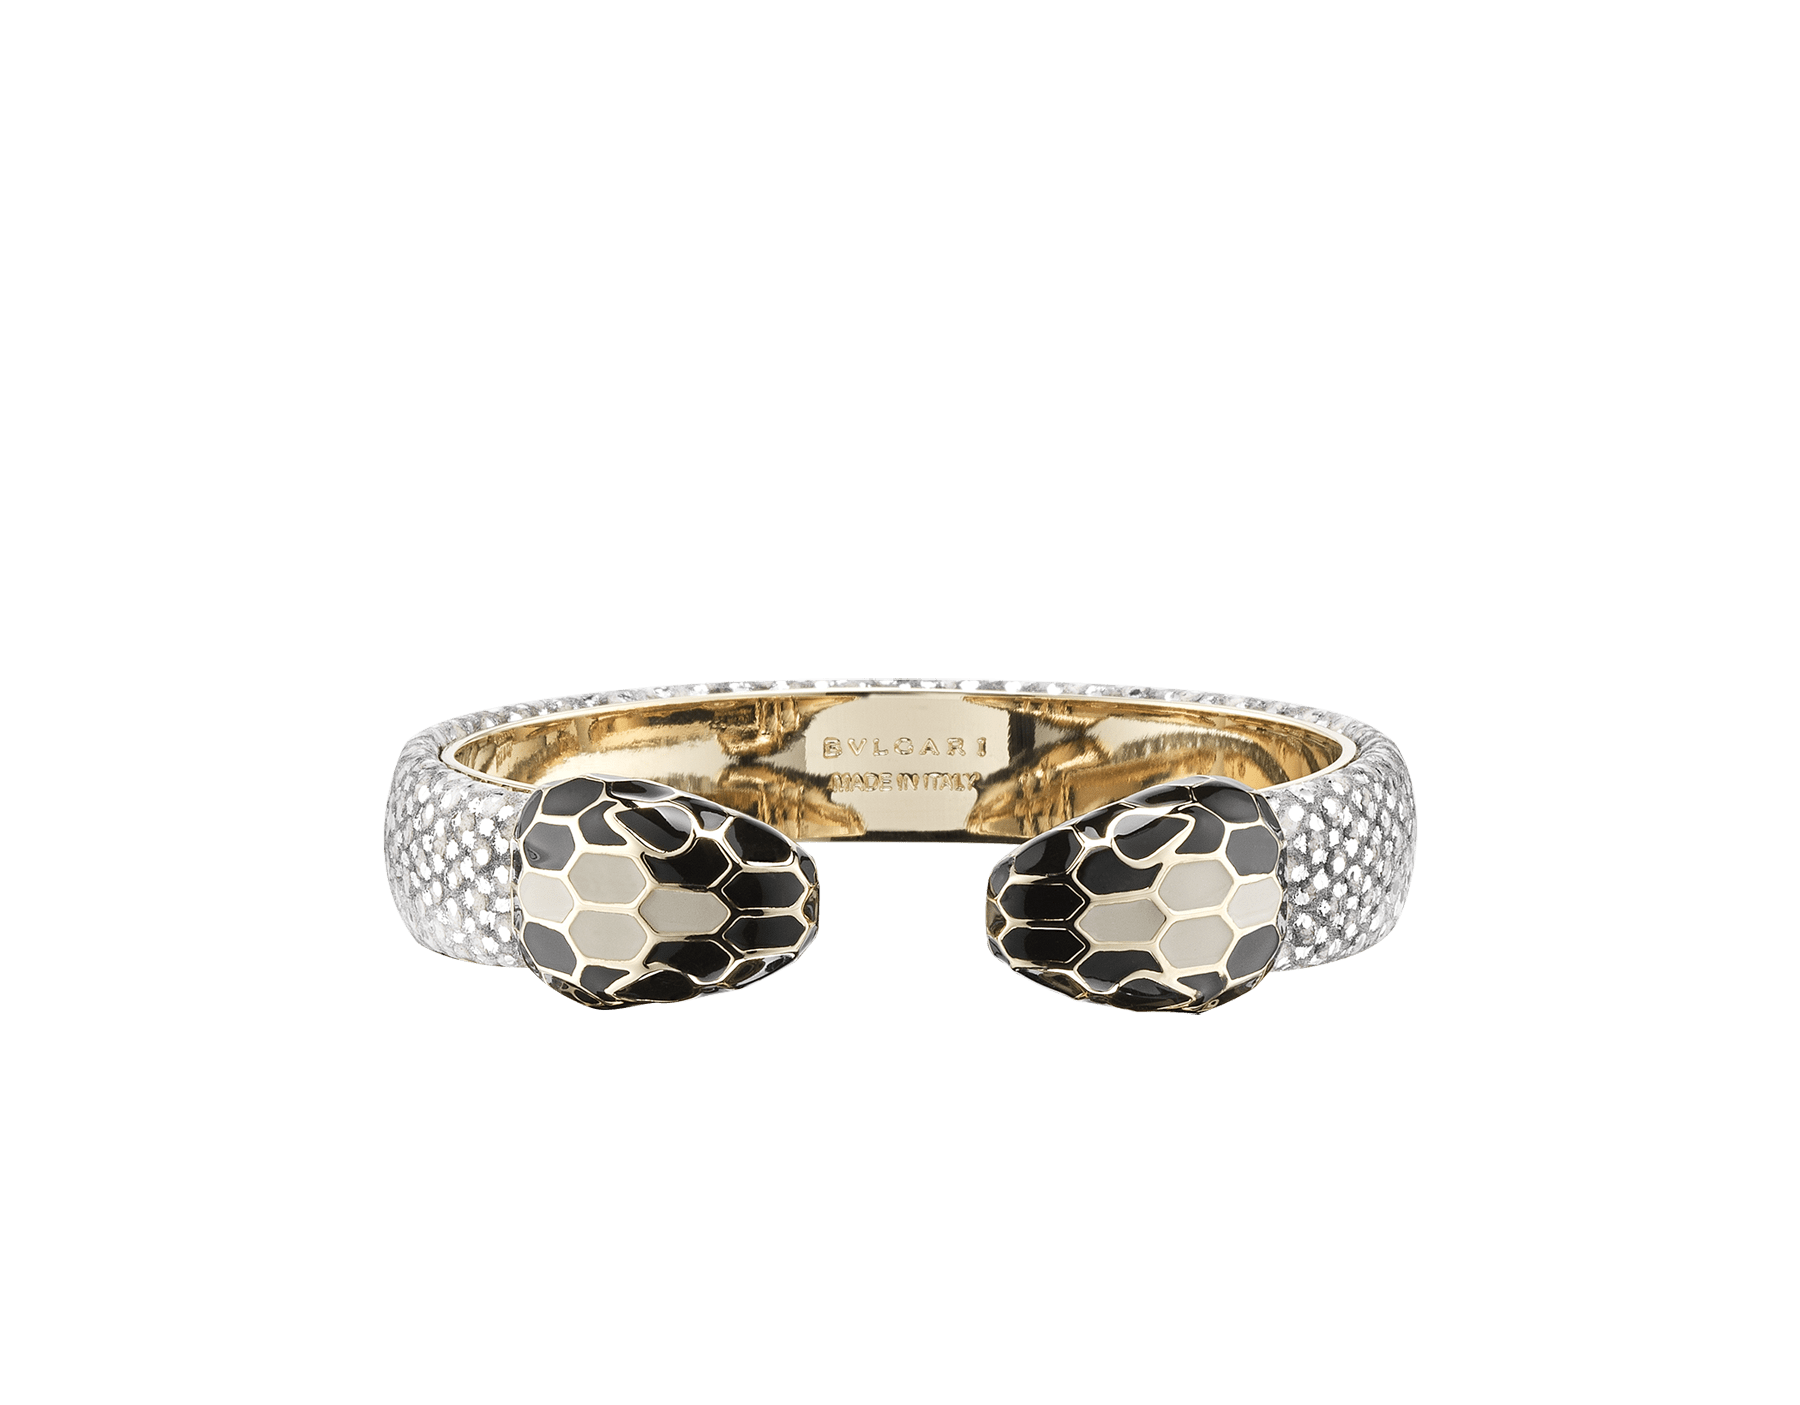 Serpenti Forever bangle bracelet in white agate metallic karung skin, with light gold plated brass hardware. Iconic contraire snakehead décor in black and white agate enamel, with black enamel eyes. SPContr-MK-WA image 1